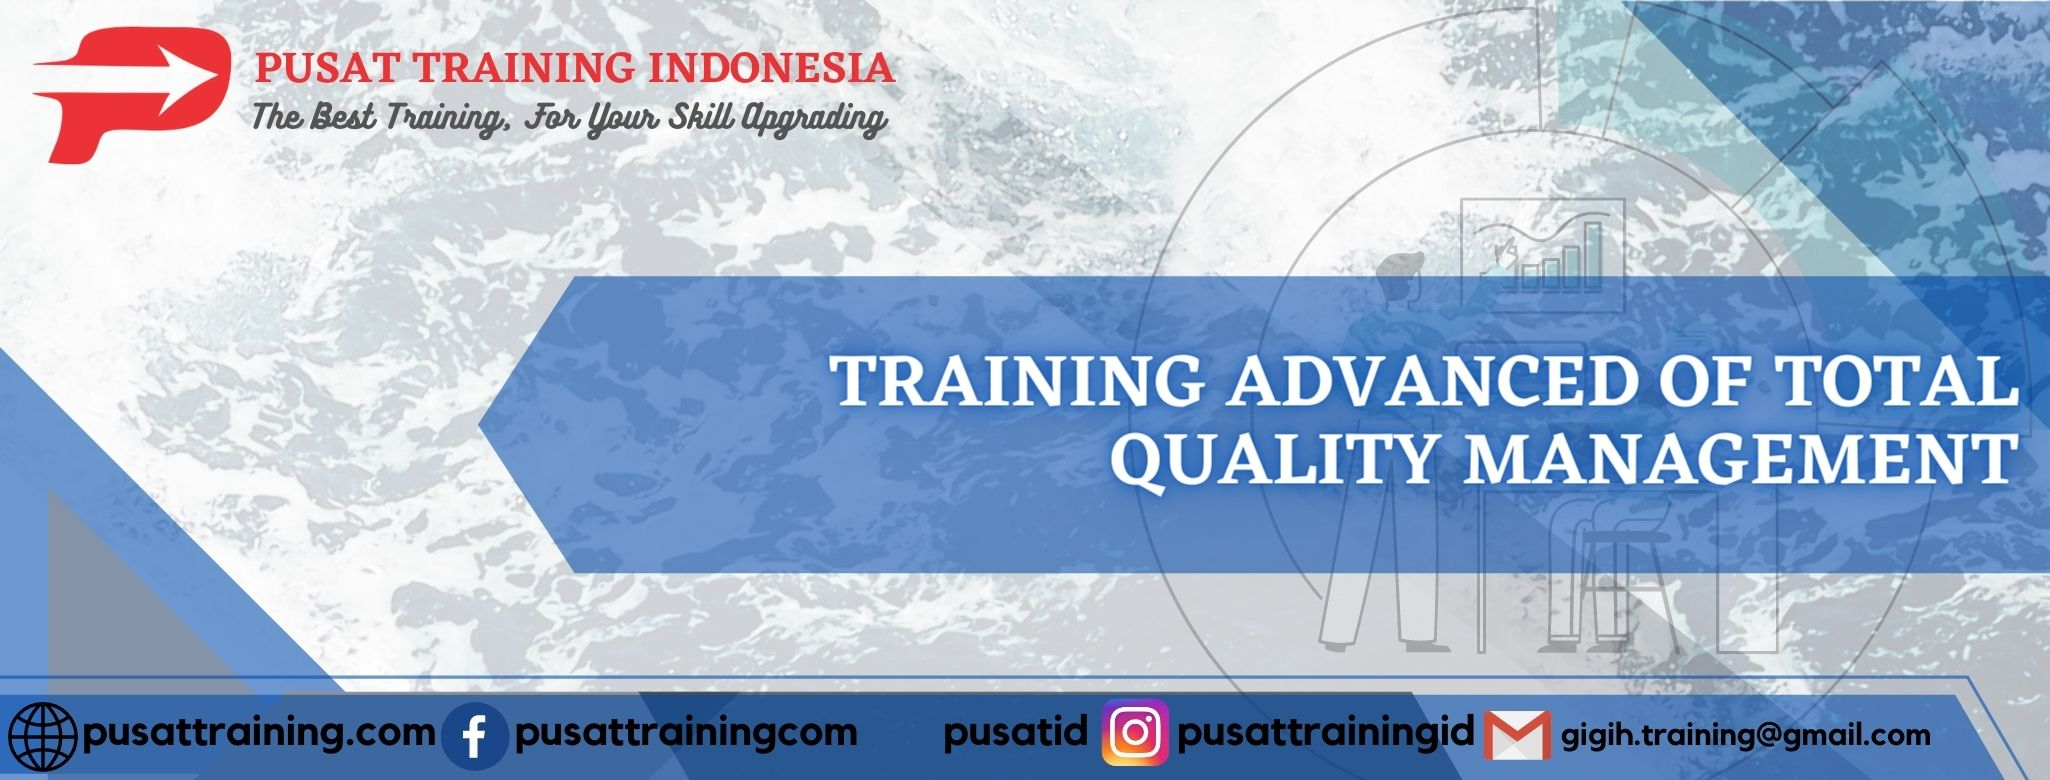 training-advance-of-total-quality-management